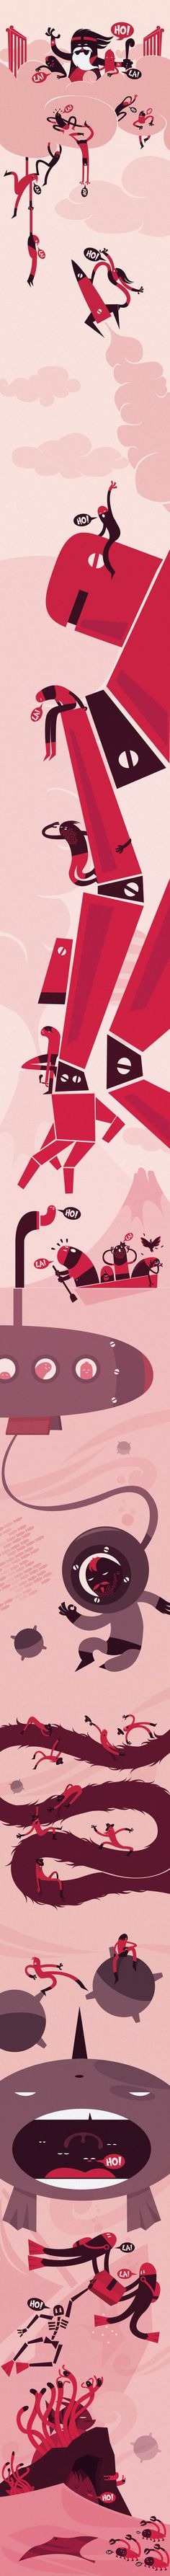 G-world adventure by Goktug Ozge, via Behance